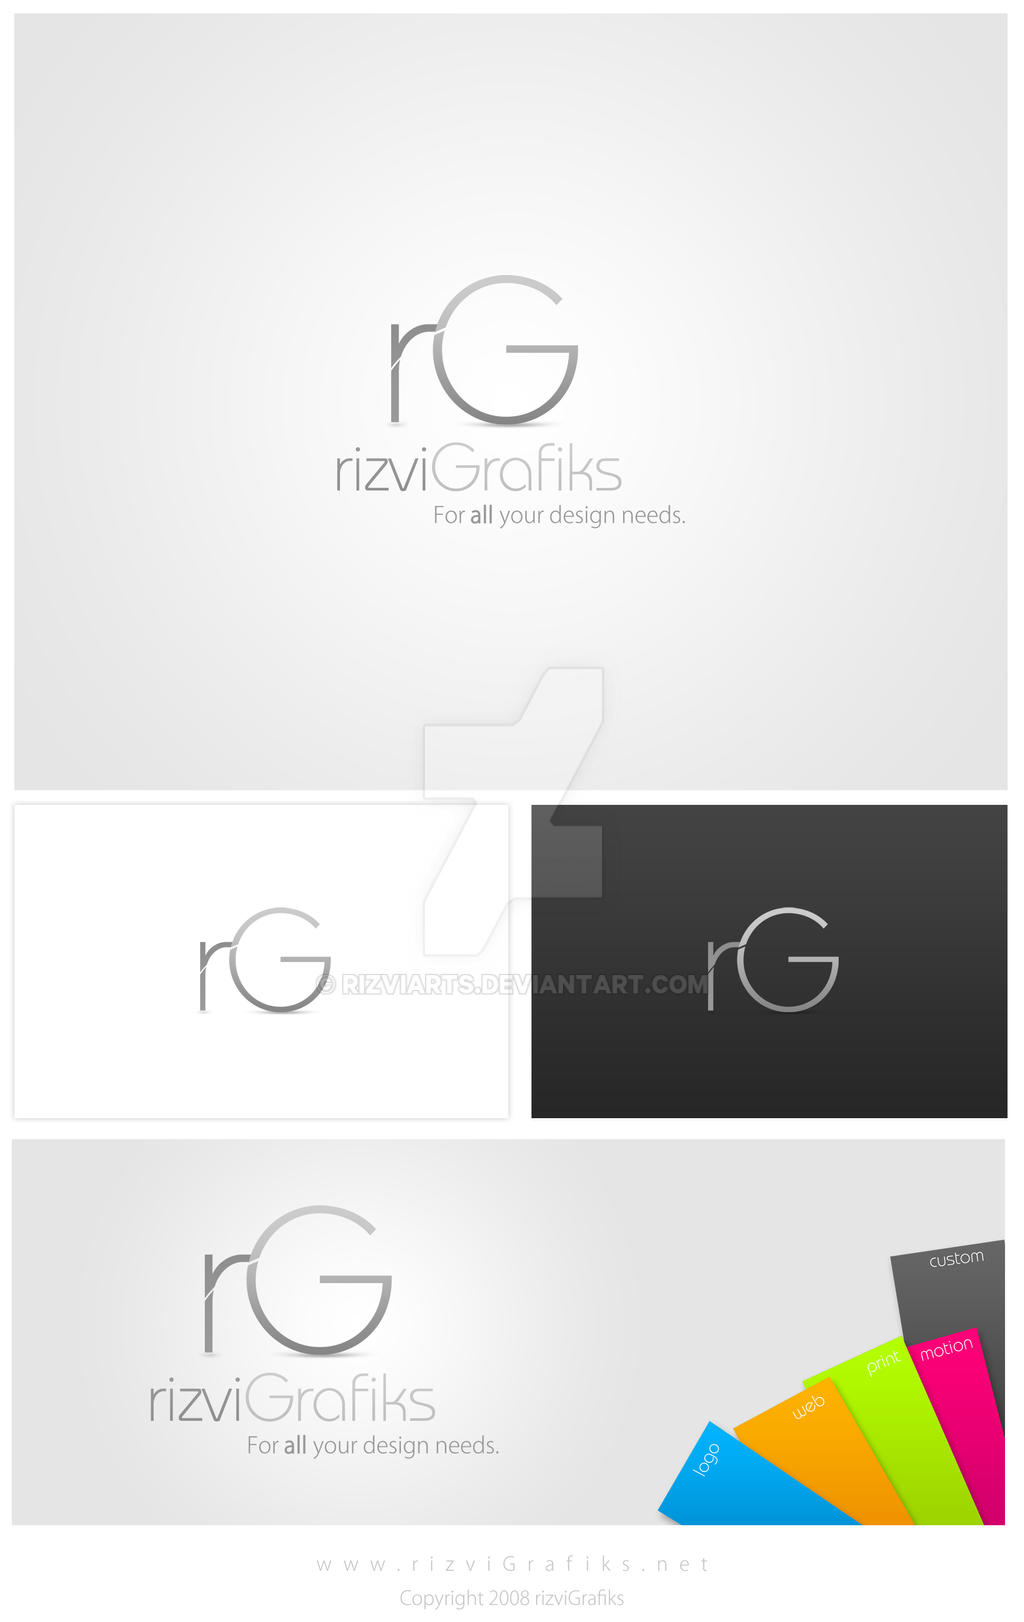 rizviGrafiks-new logo design by rizviArts